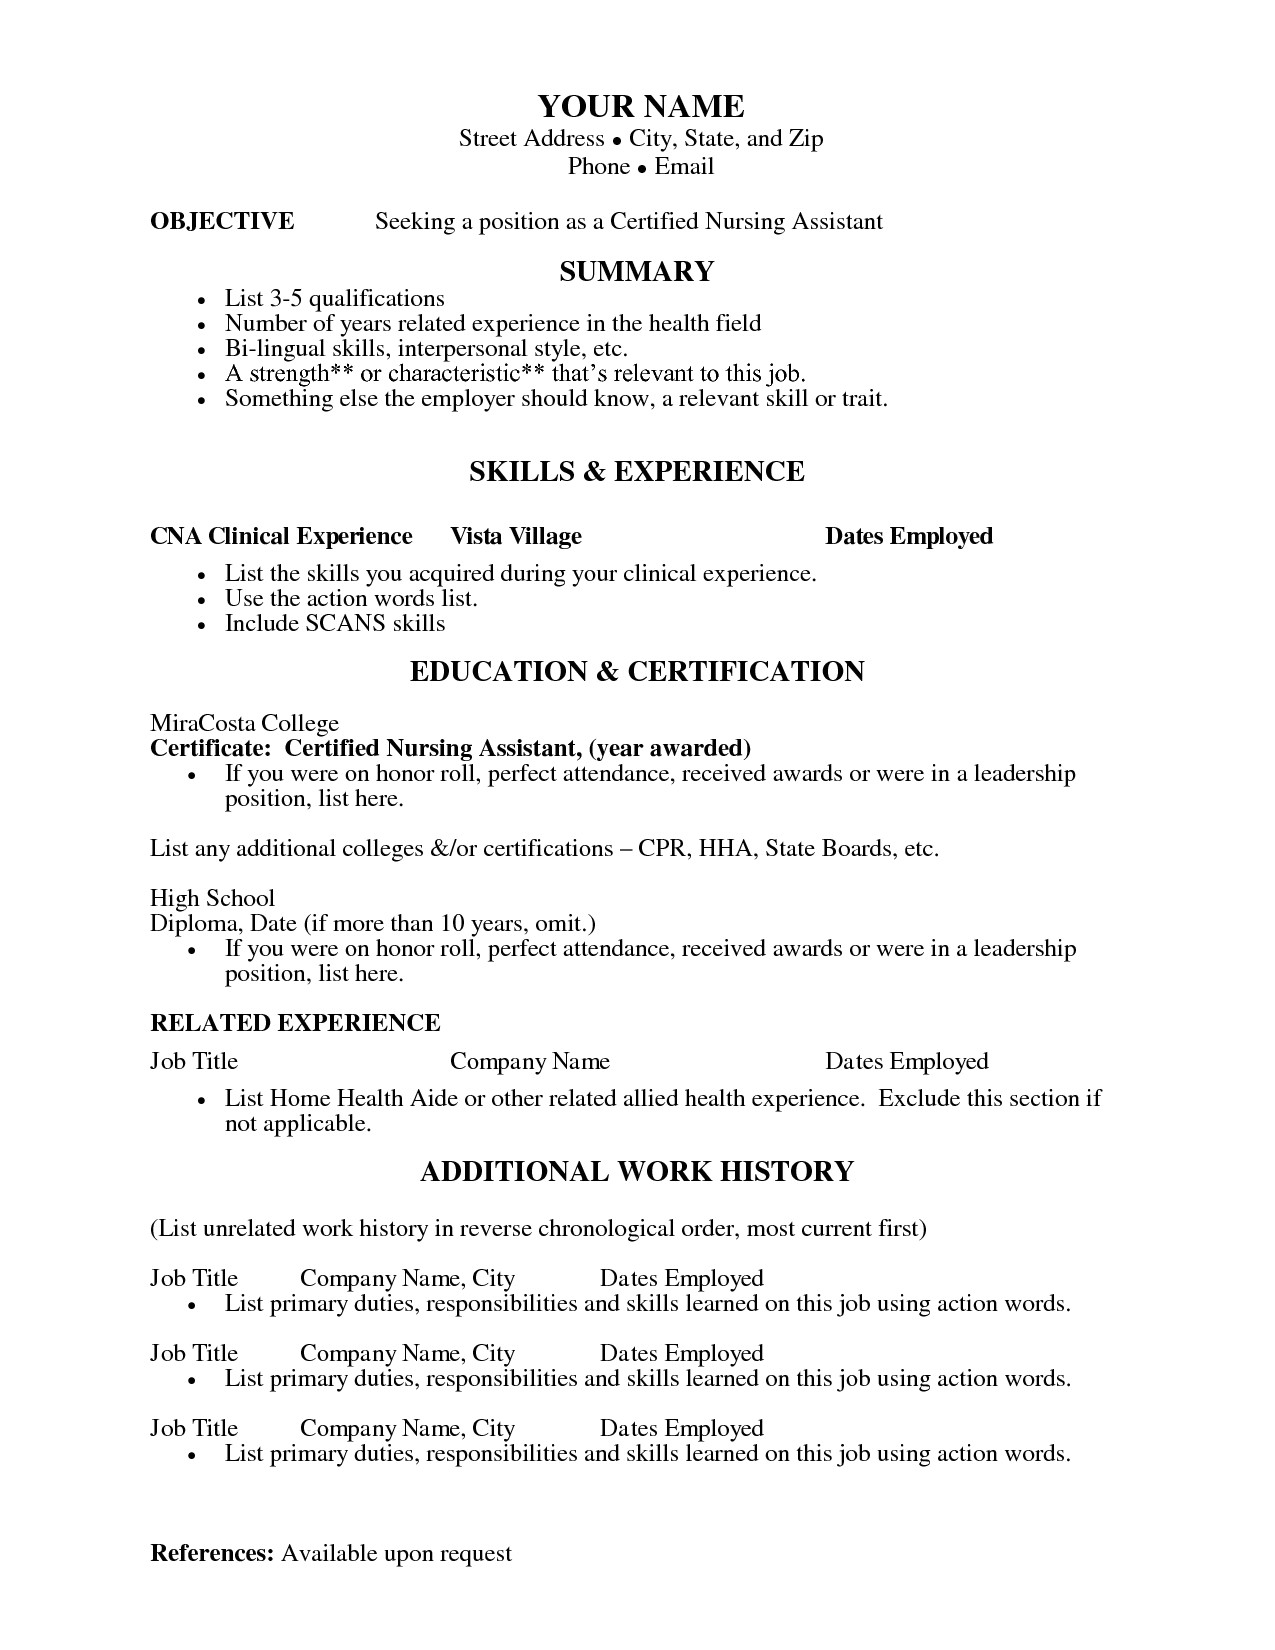 Sample Resume for Cna with Objective Cna Resume Templates Health Symptoms and Cure Com